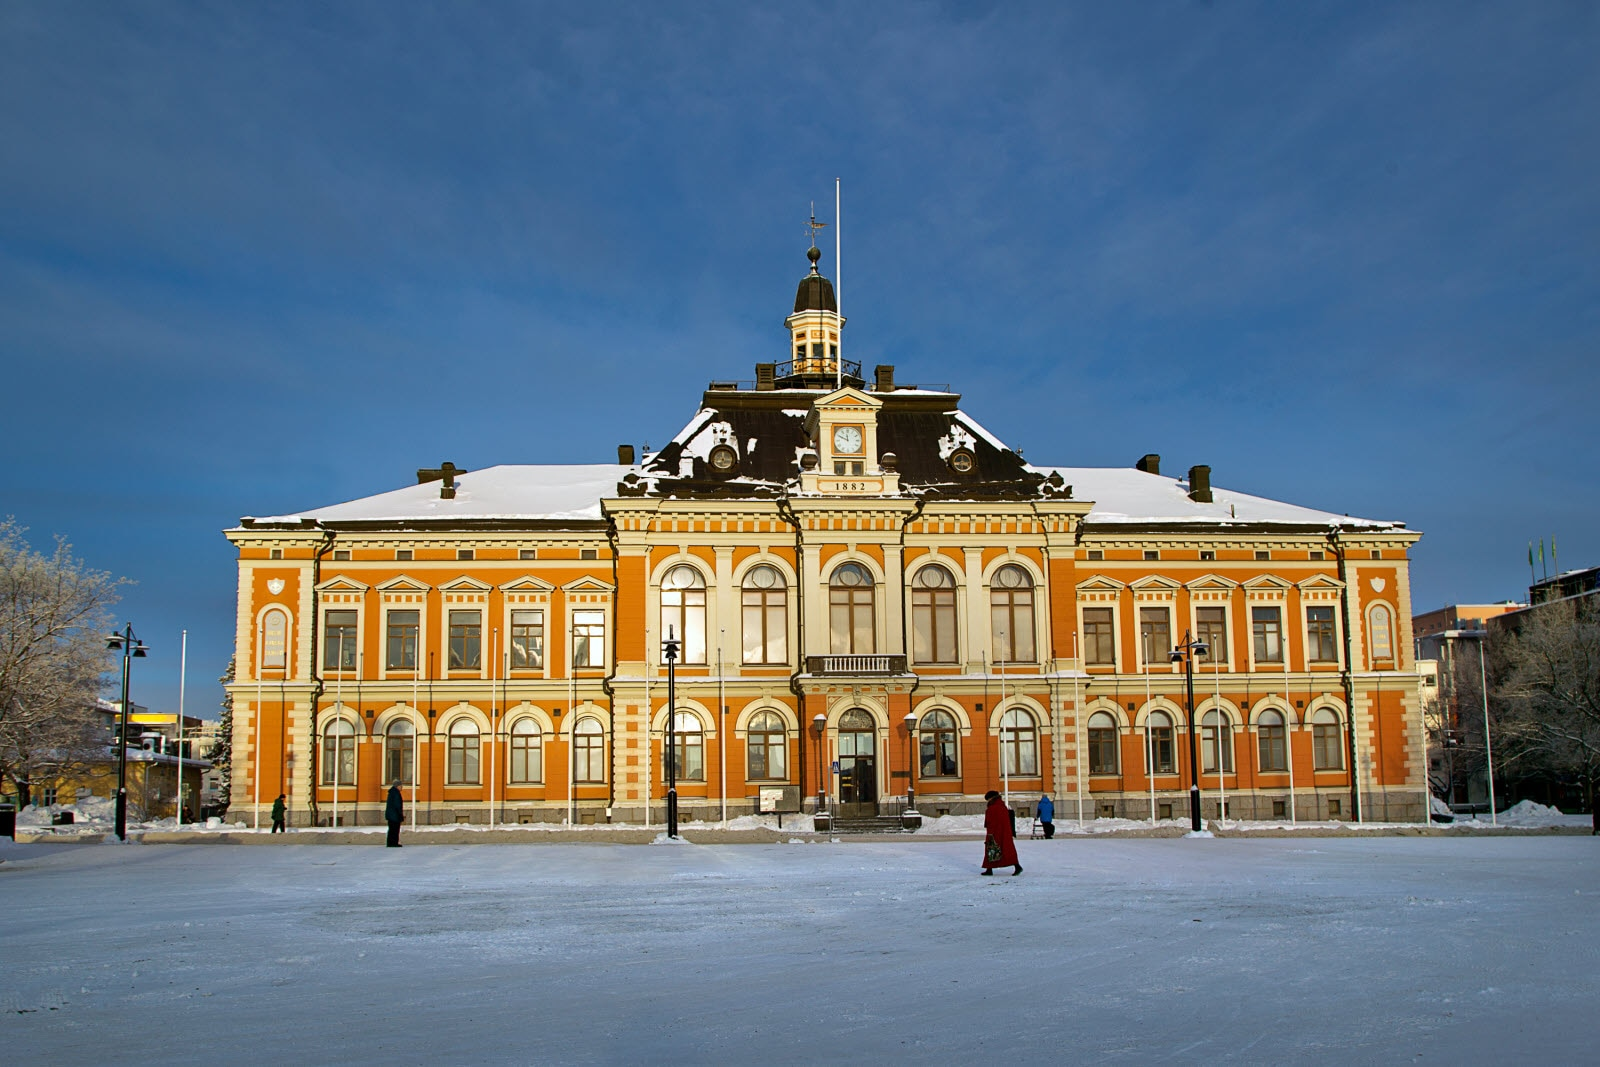 City hall in Winter